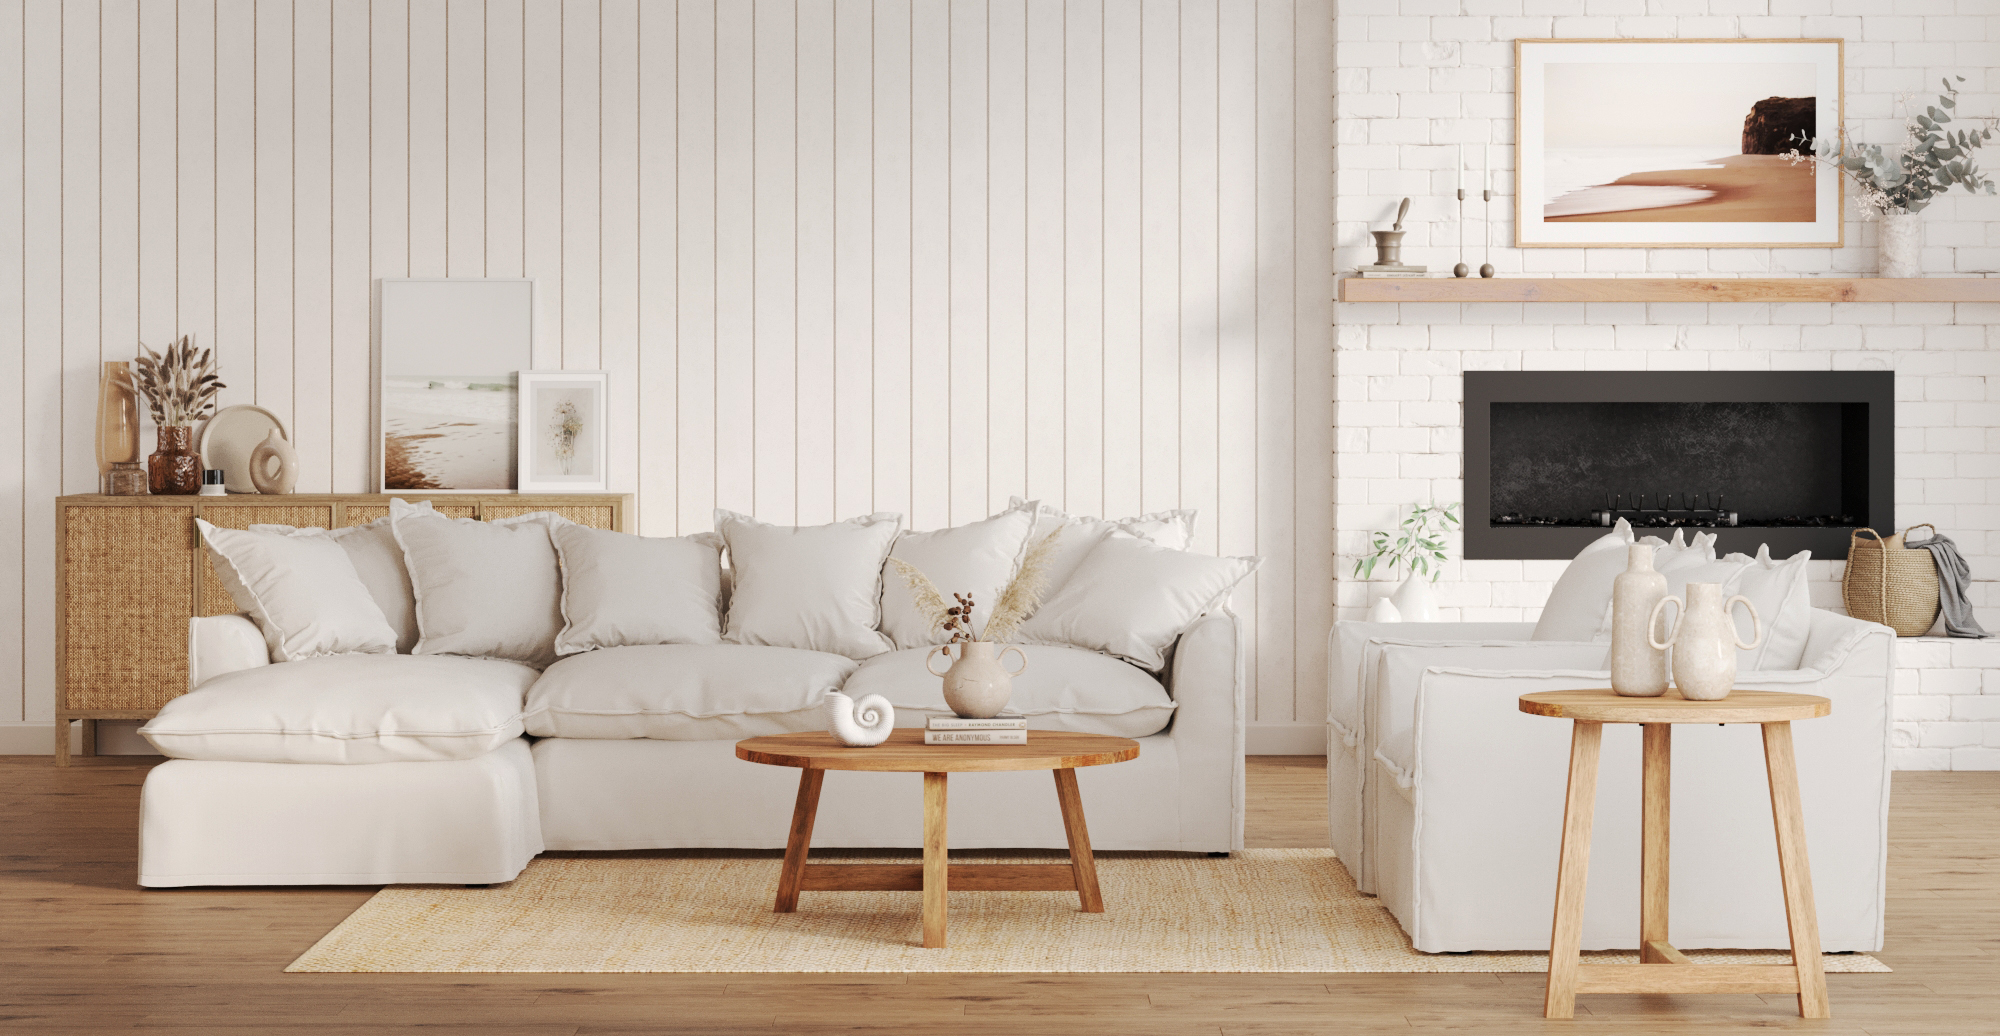 Brosa Palermo 3 Seater Modular Sofa with Chaise styled in coastal living room